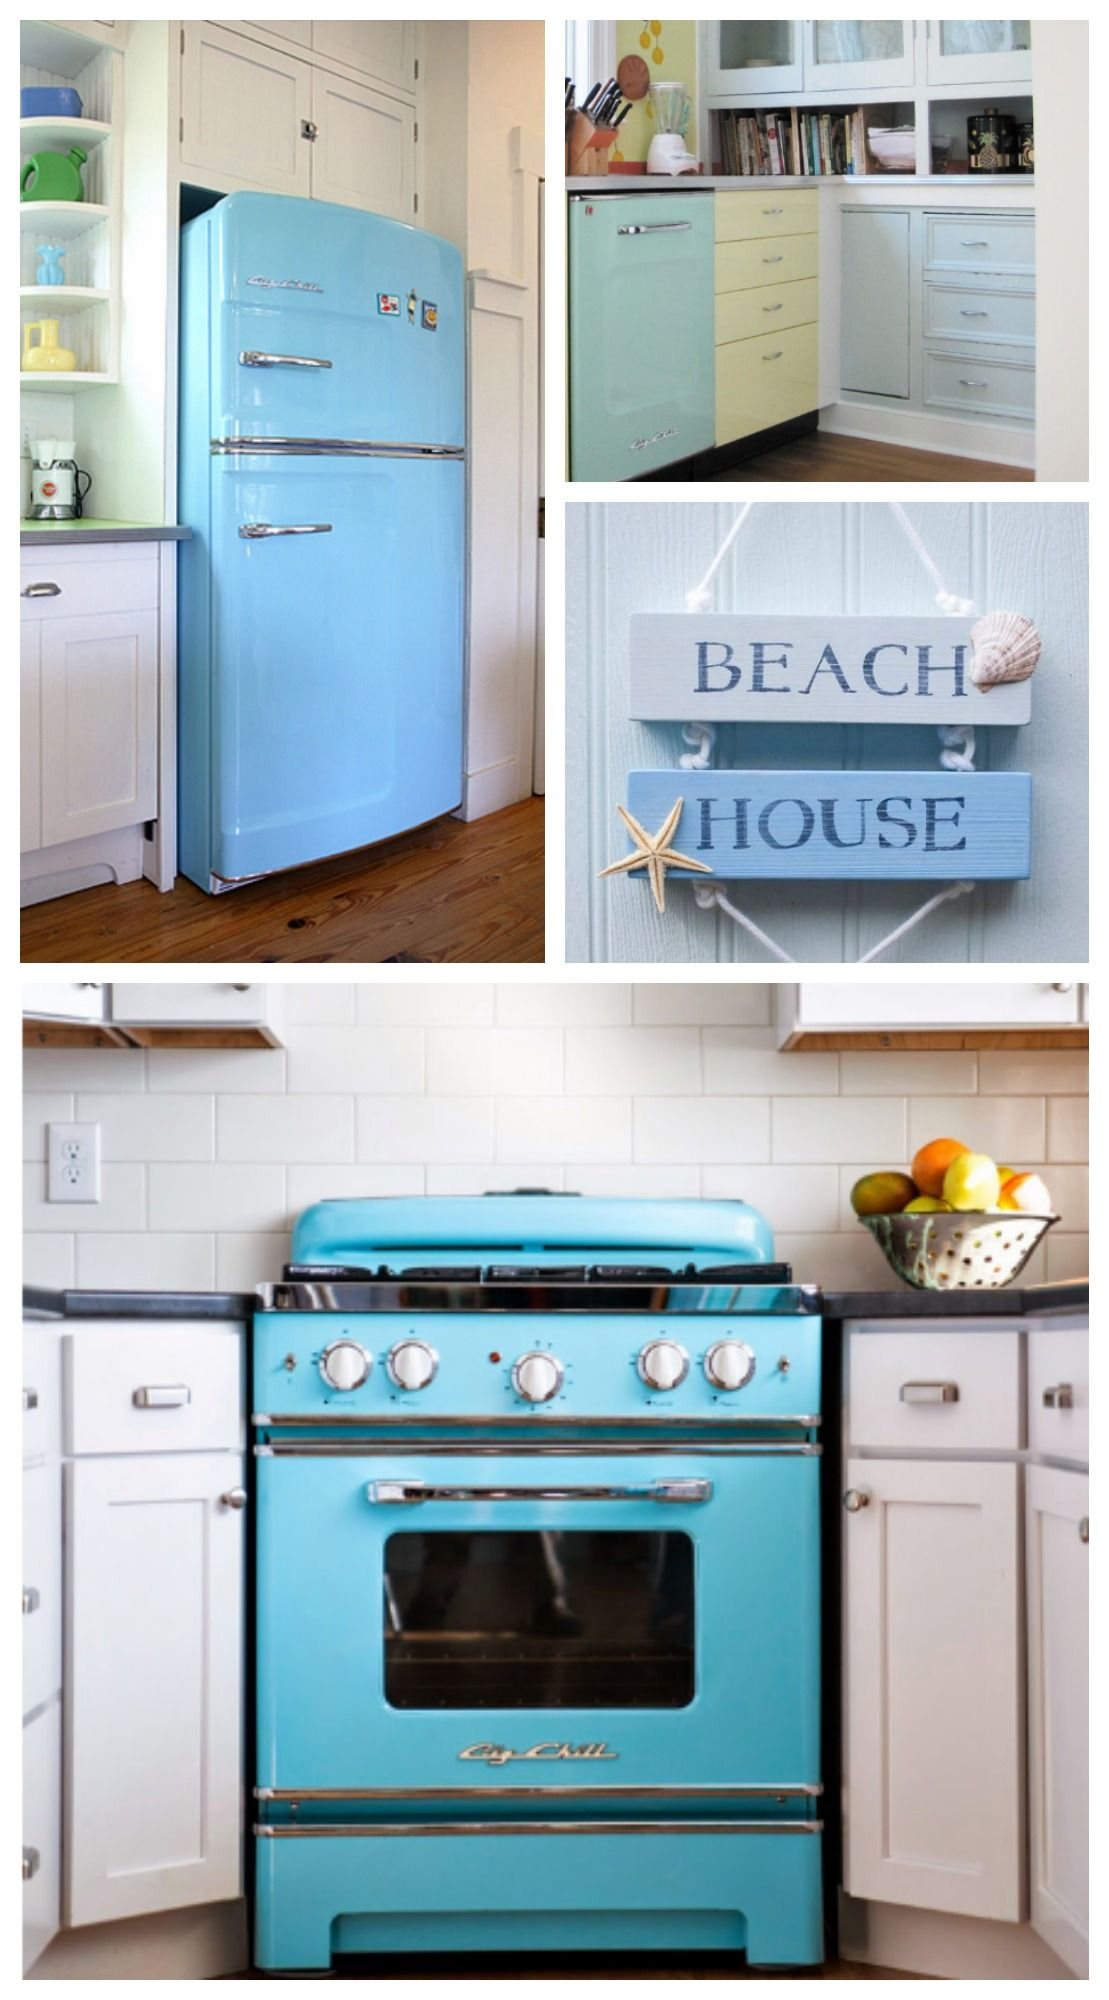 big chill retro appliances in beach blue love color we have over